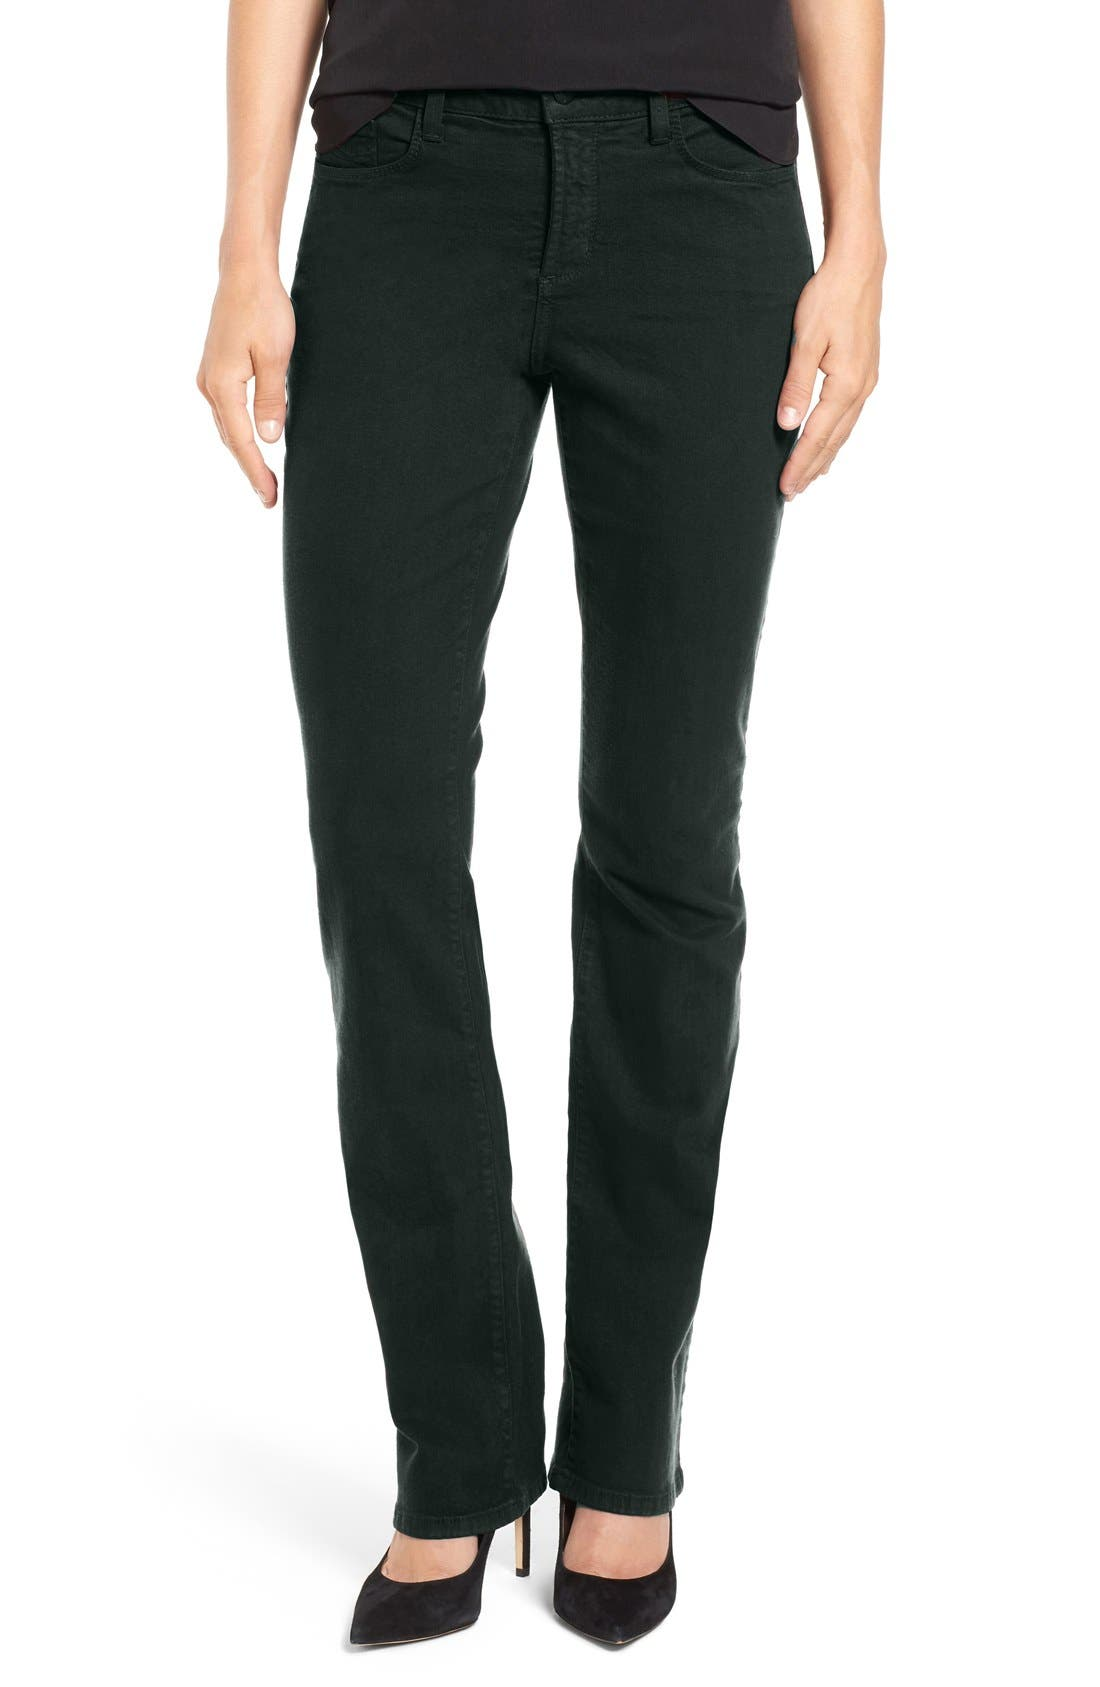 Main Image - NYDJ Sheri Stretch Skinny Jeans (Regular & Petite)